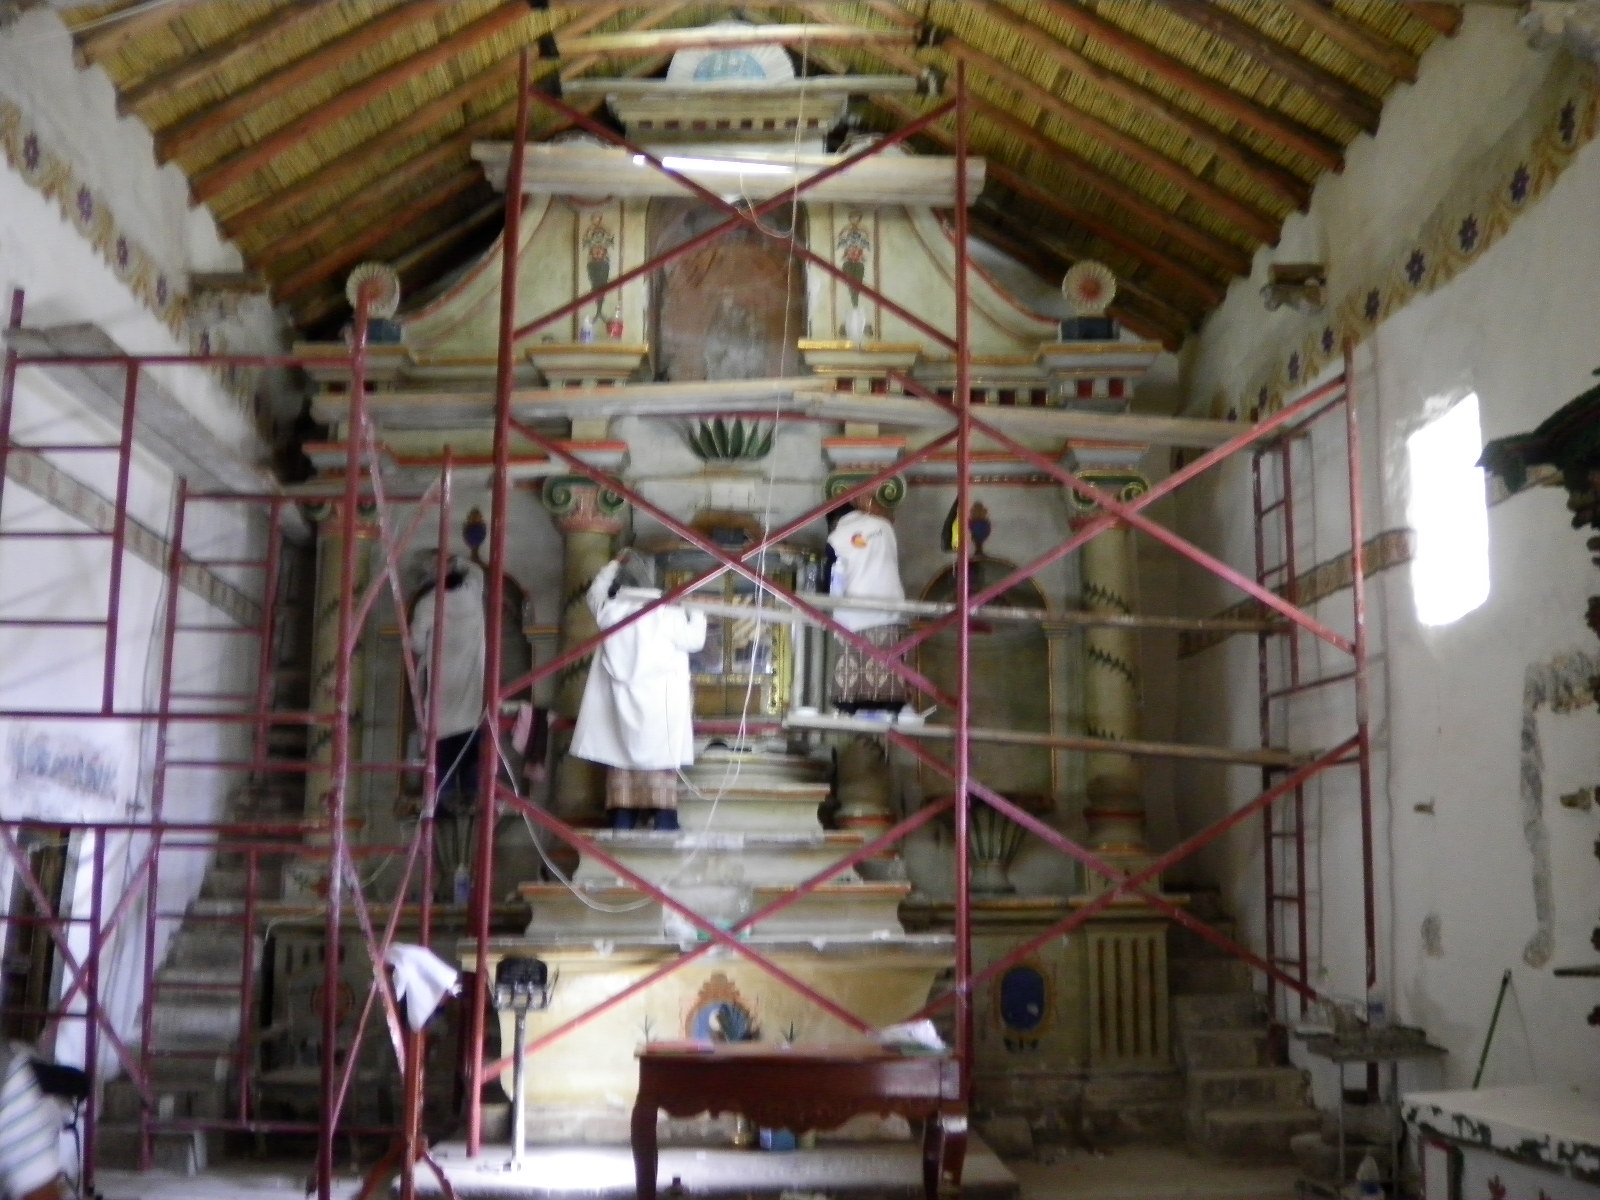 File:Church Renovation Project.JPG - Wikimedia Commons